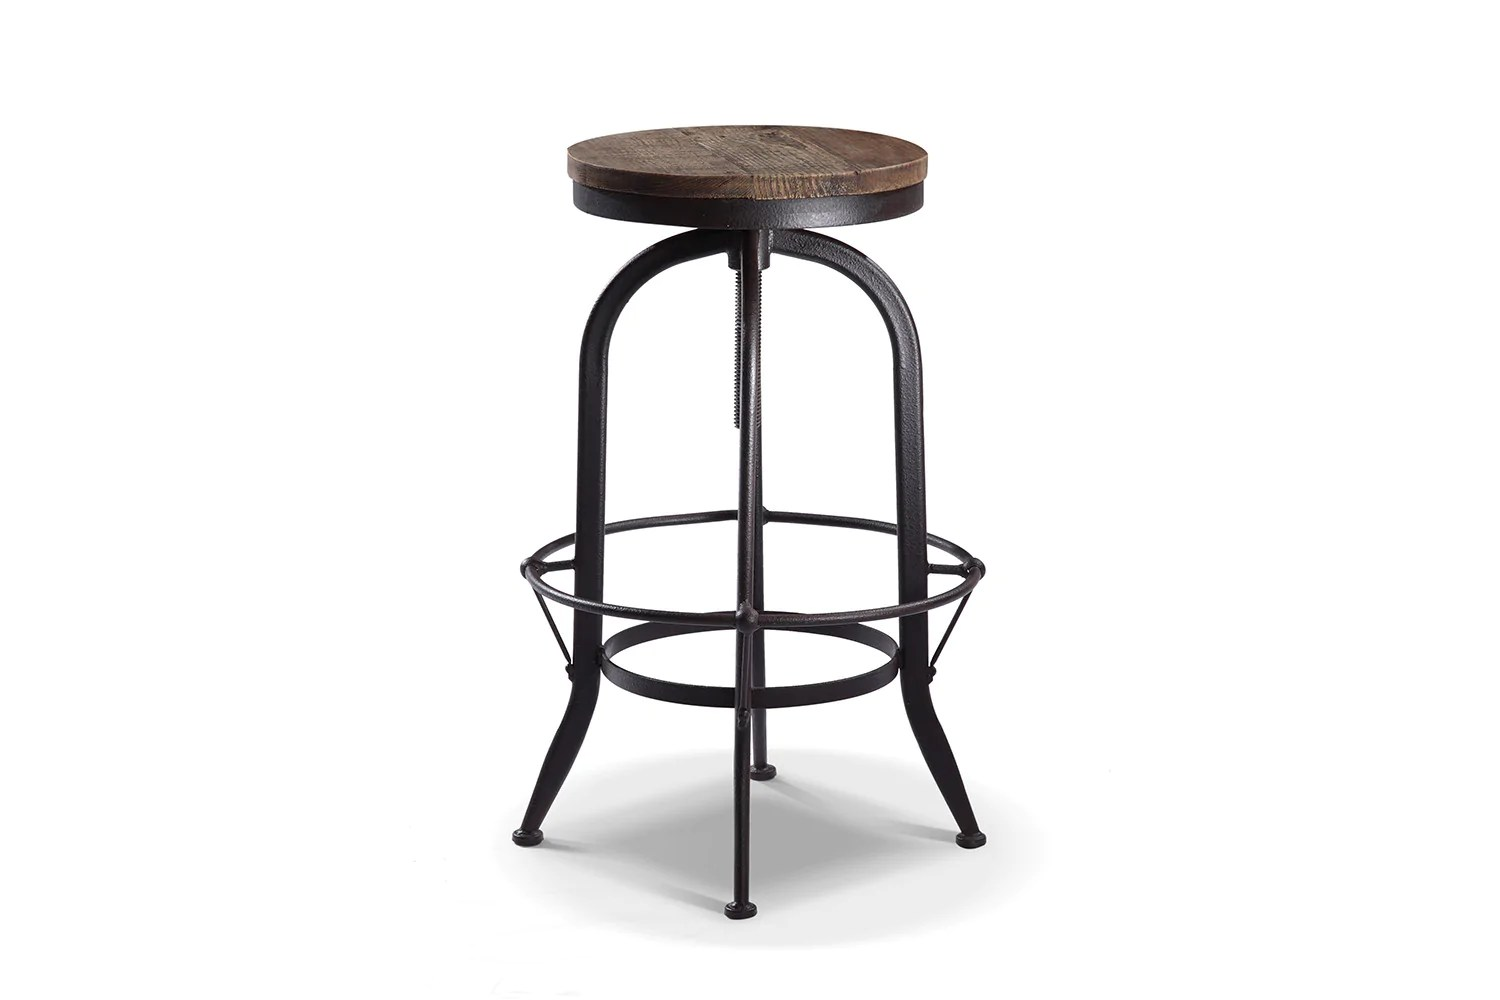 Tabourets Industriel Tabouret De Bar Rond Vintage Ta03 Rose And Moore